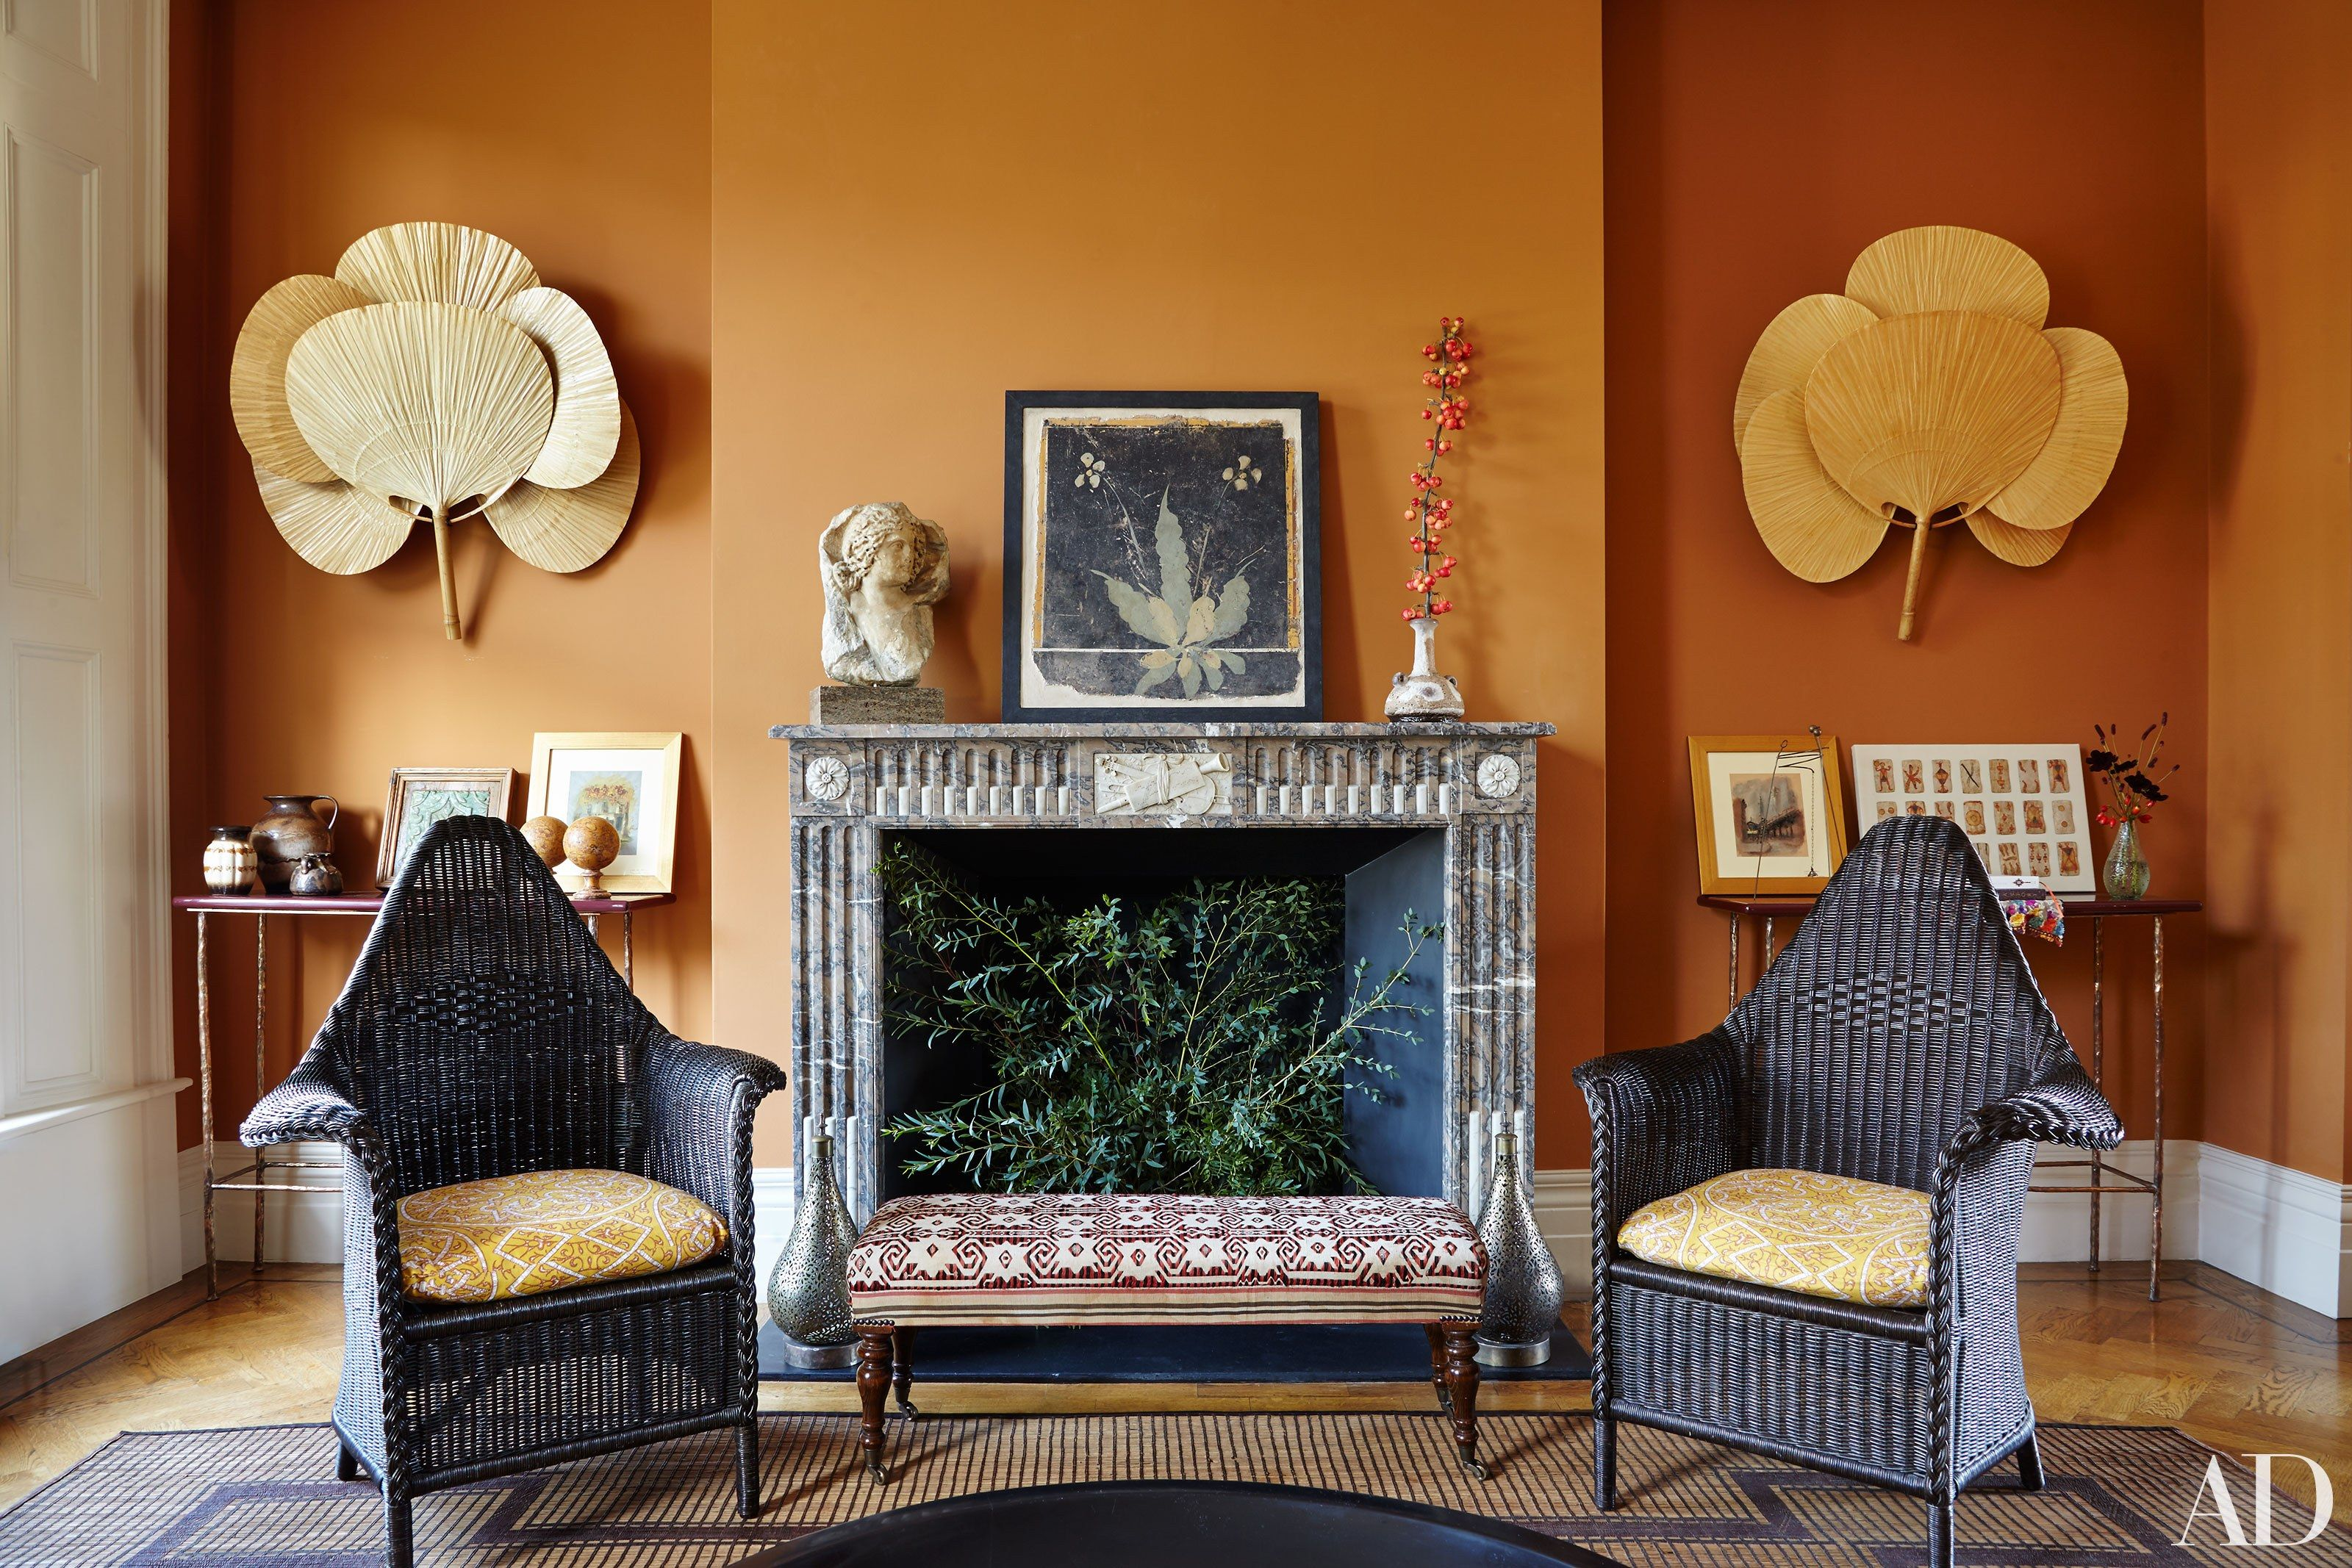 Design Ideas from the Eclectic Home of